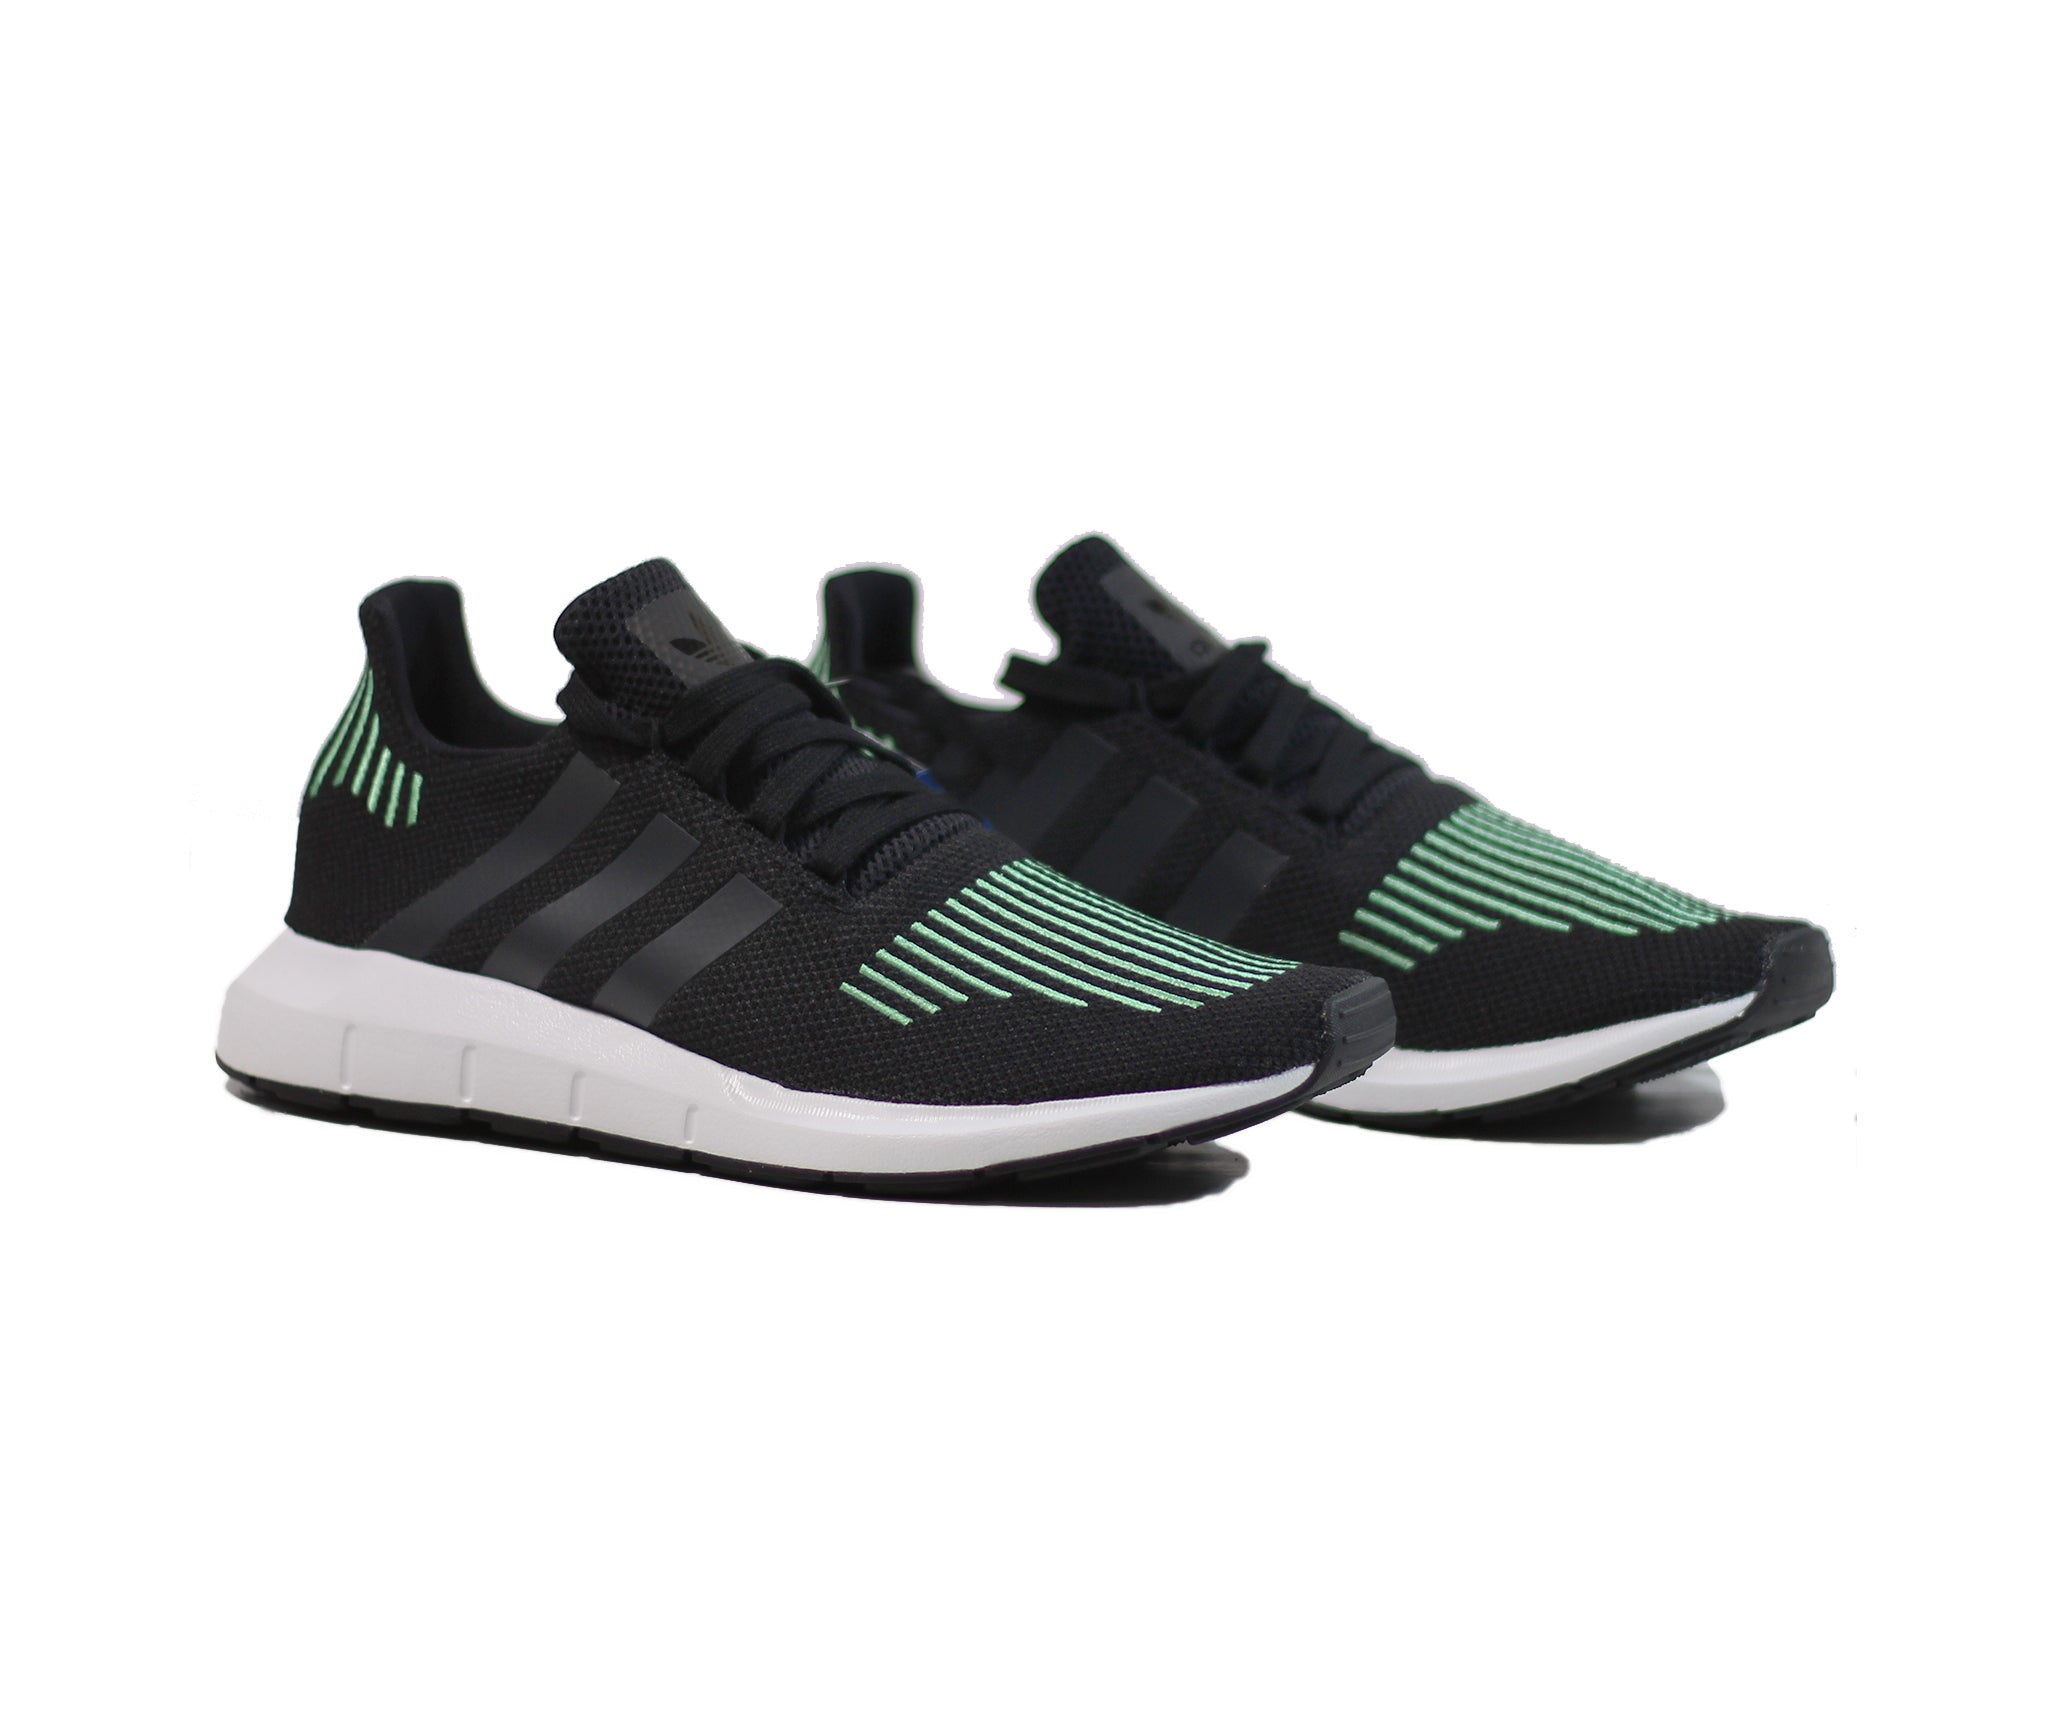 7264302d160 Adidas Swift Run - Black Green – History of New York Powered by  Sneaker  Lounge